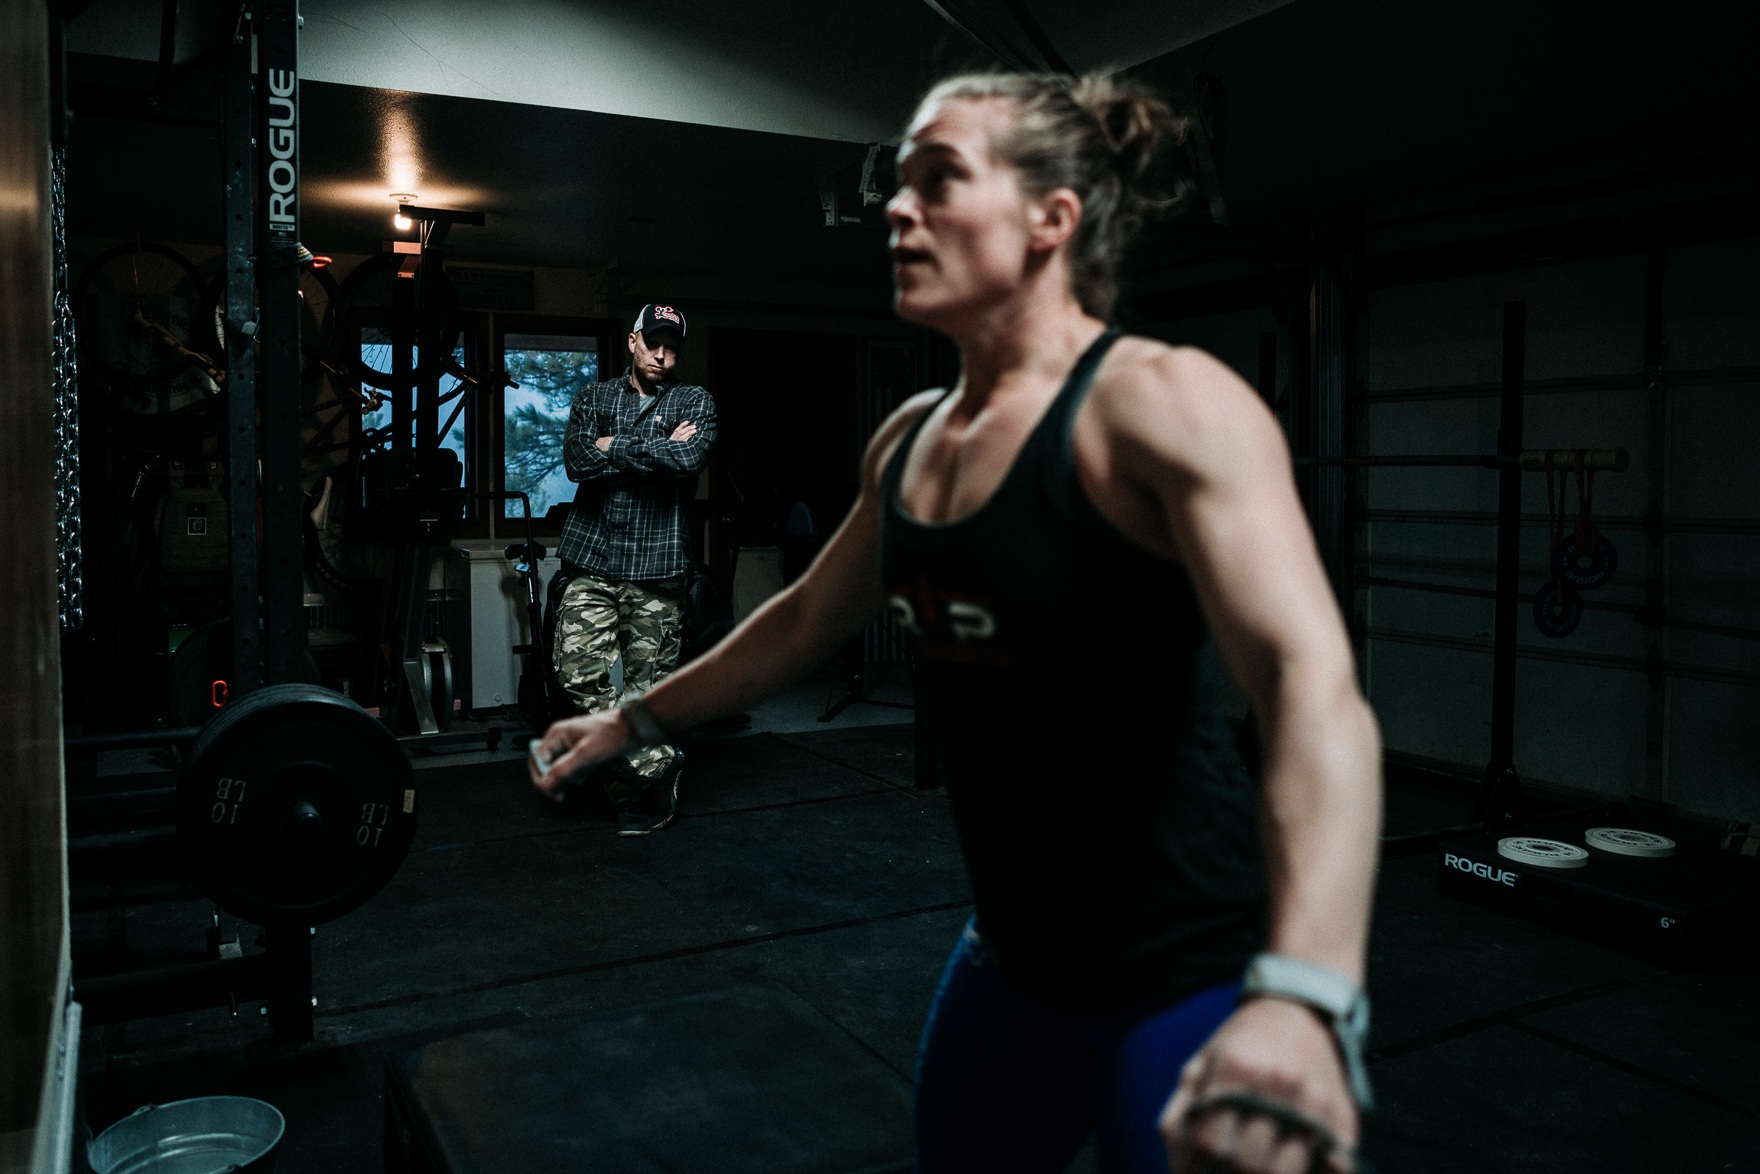 """Through challenging and creative coaching, Tosh provided new perspective on toughness and strengthened my overall confidence…"" - Brista Mayfield, CrossFit Games Athlete"